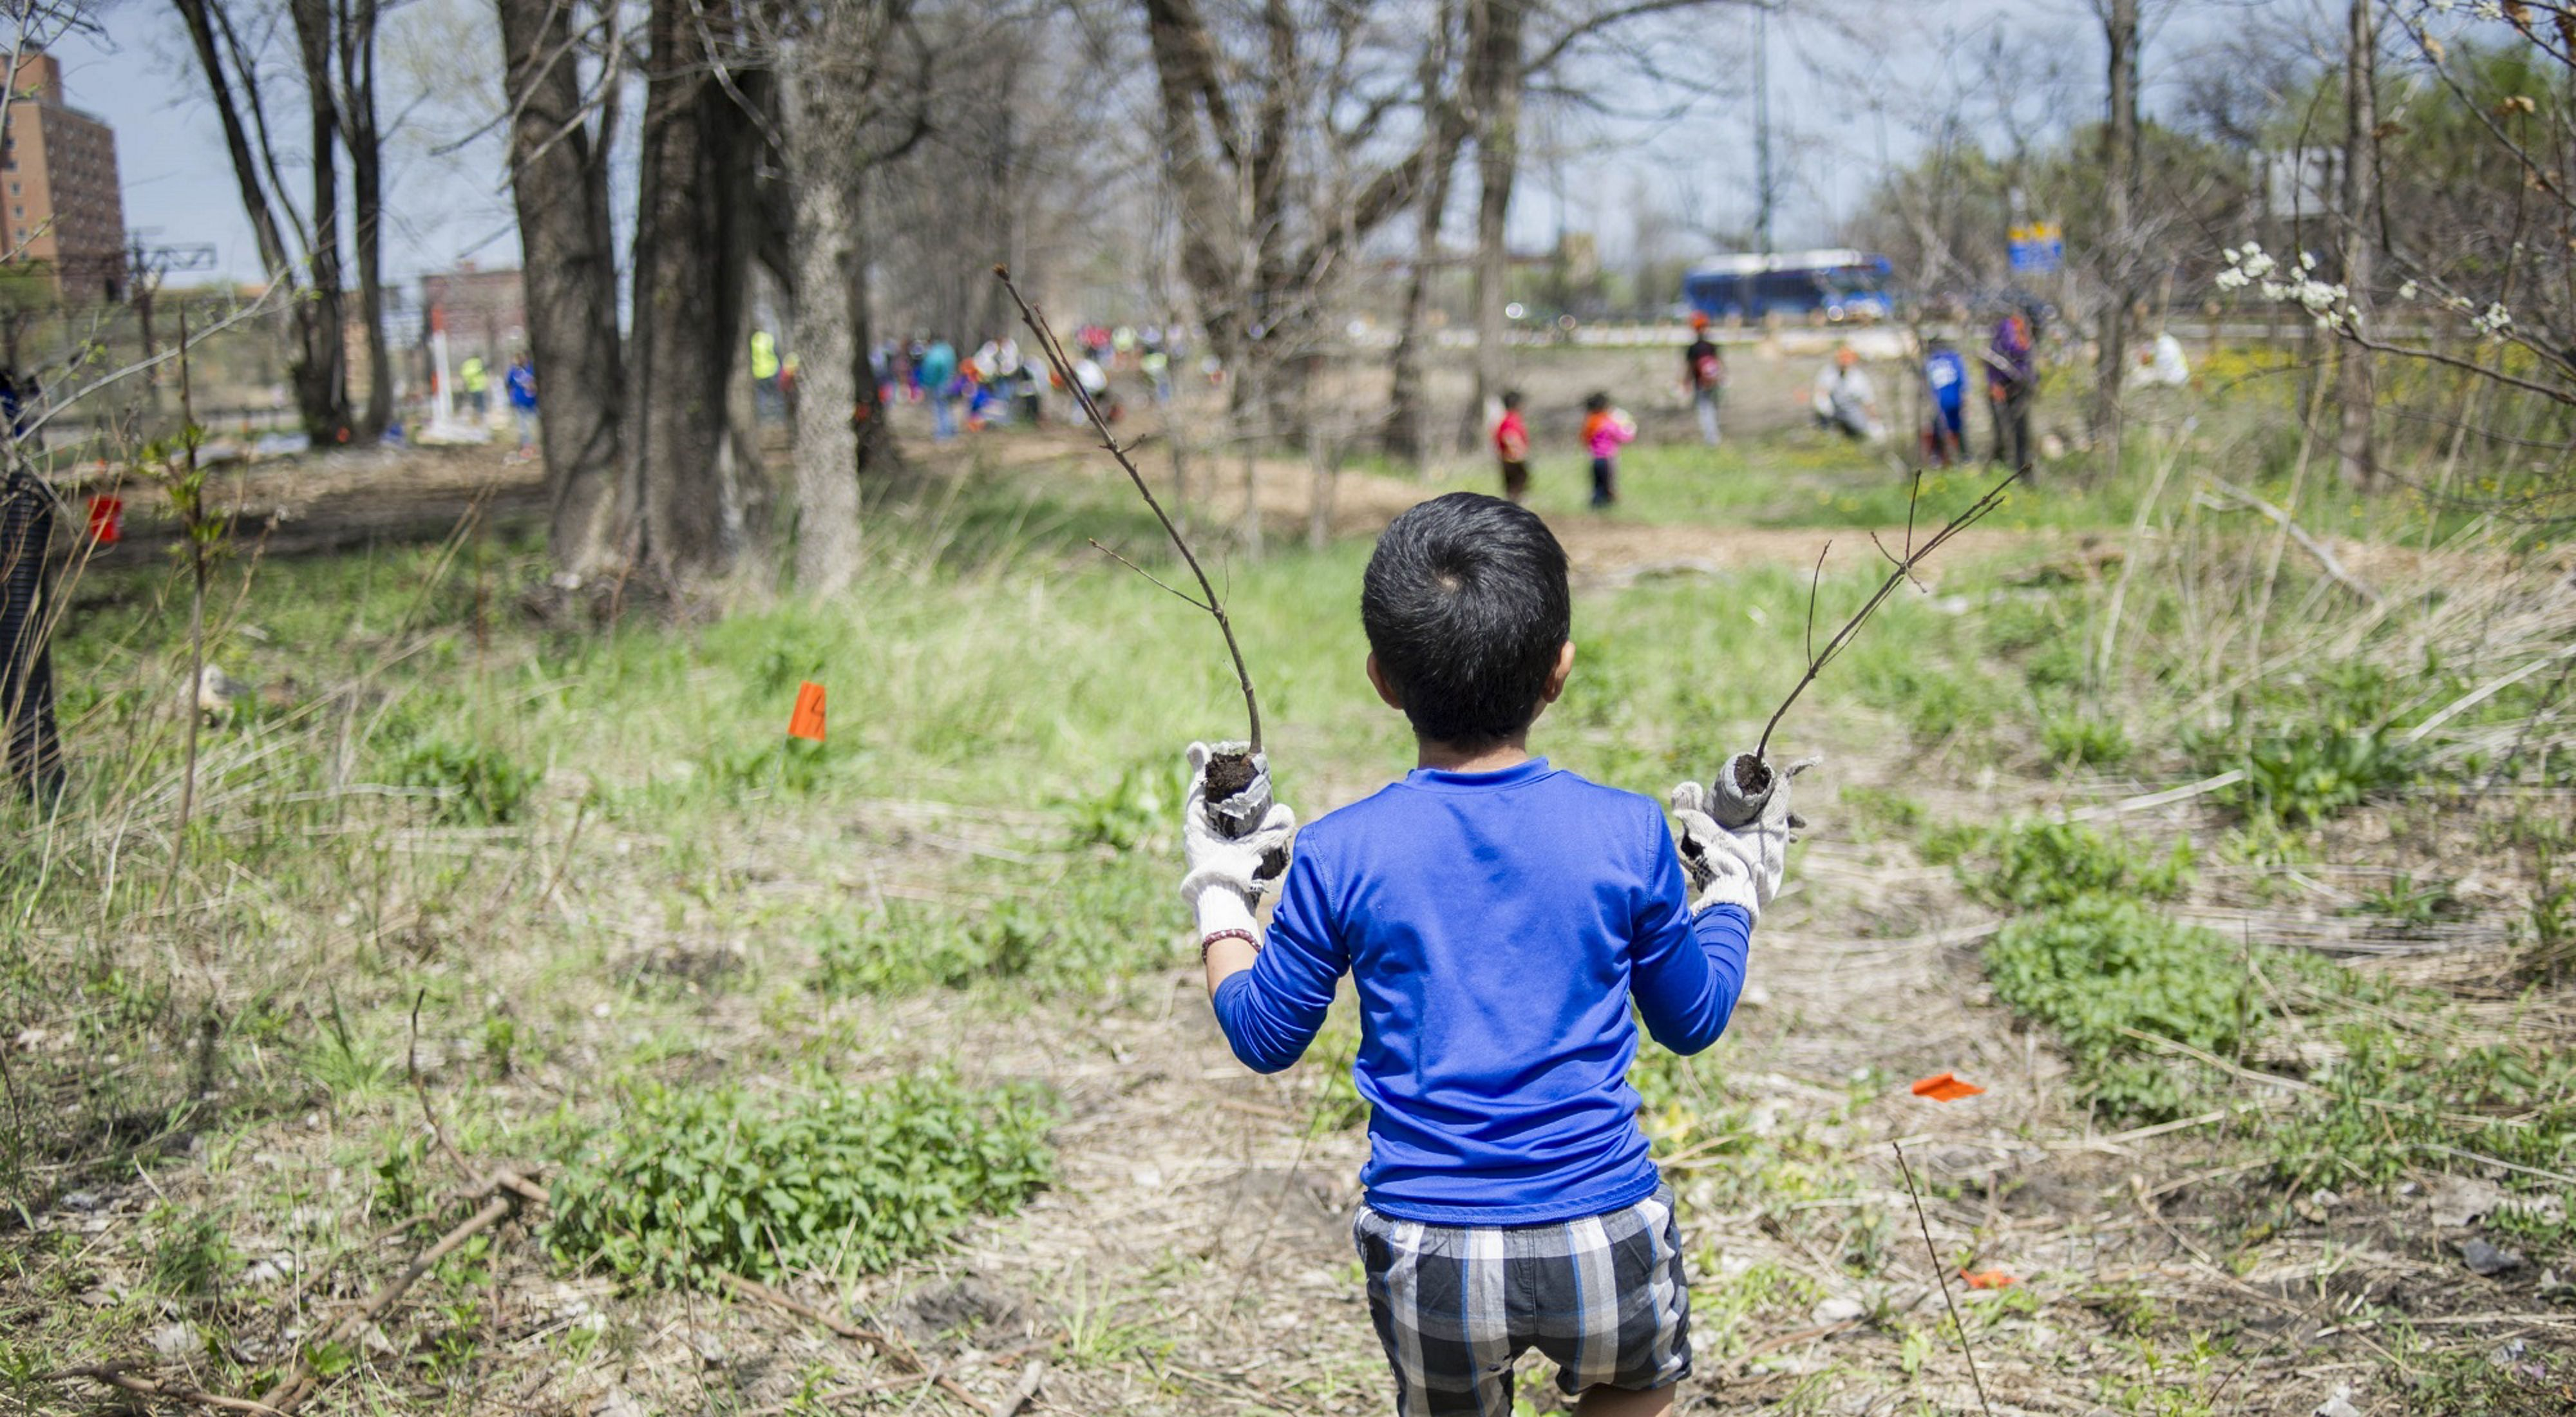 A young volunteer carries two small trees to plant.